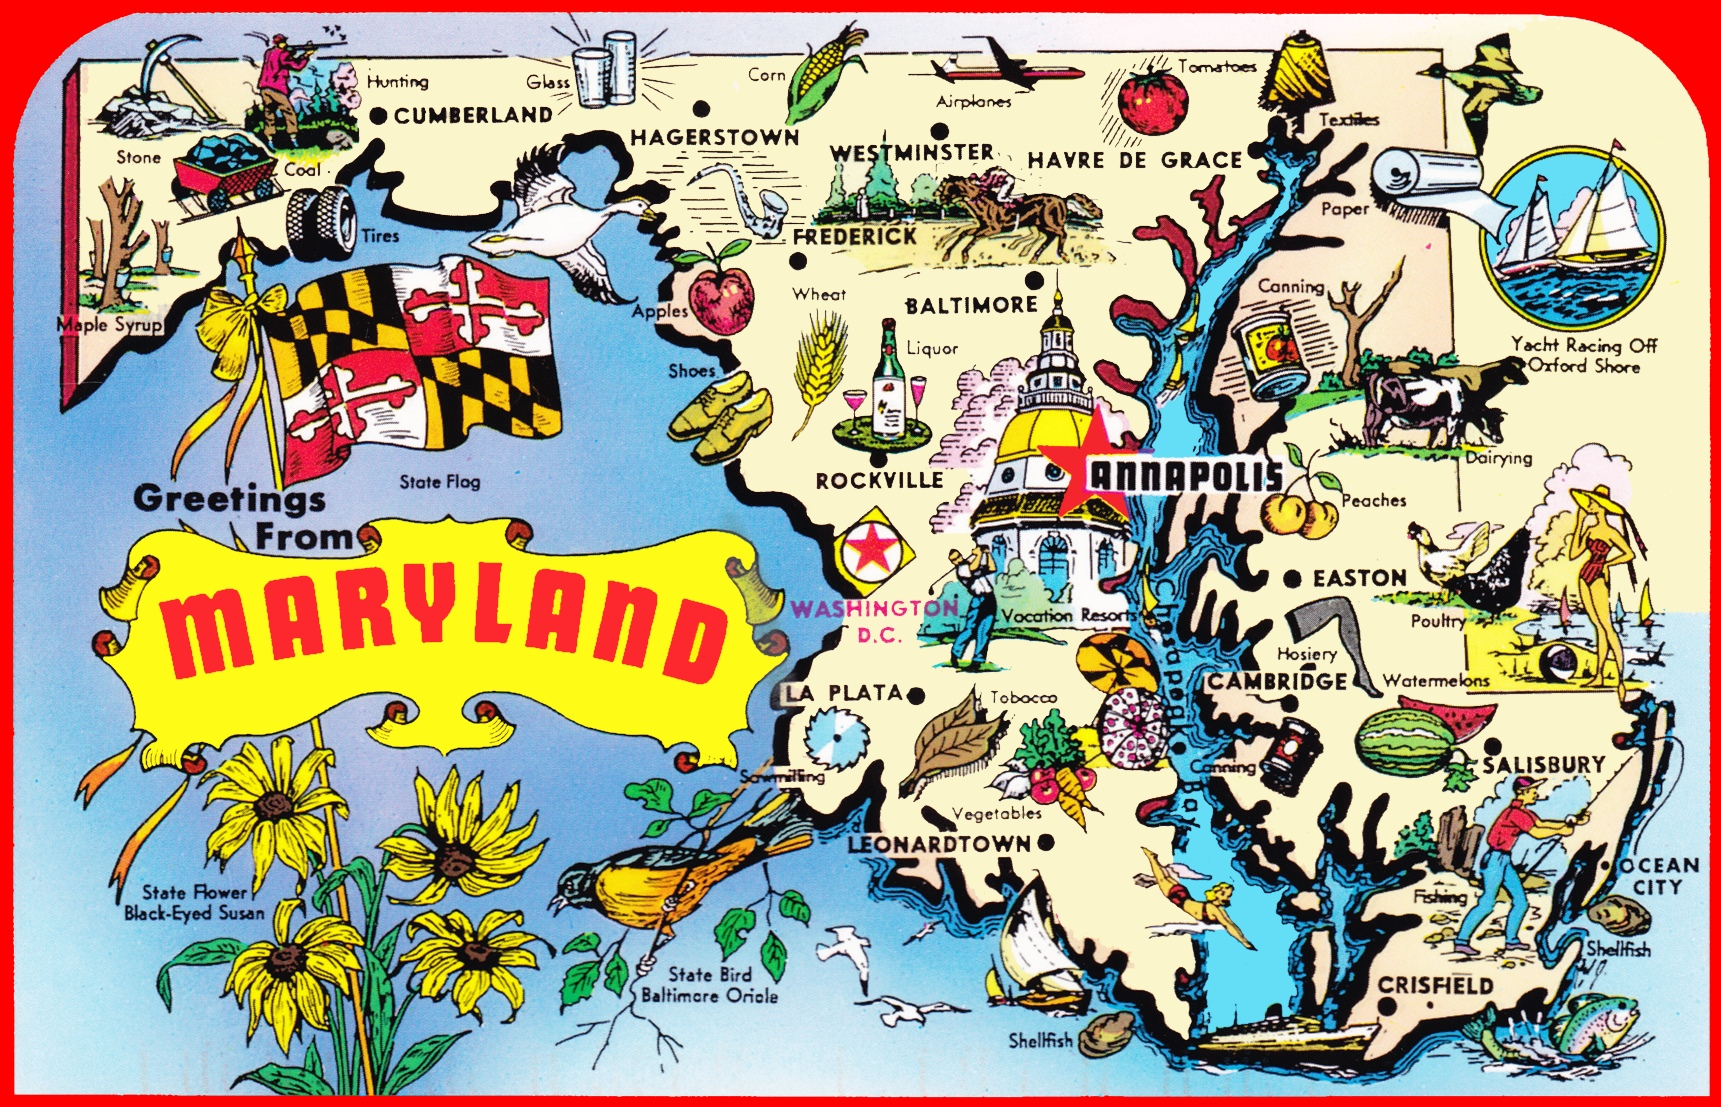 Pictorial travel map of Maryland